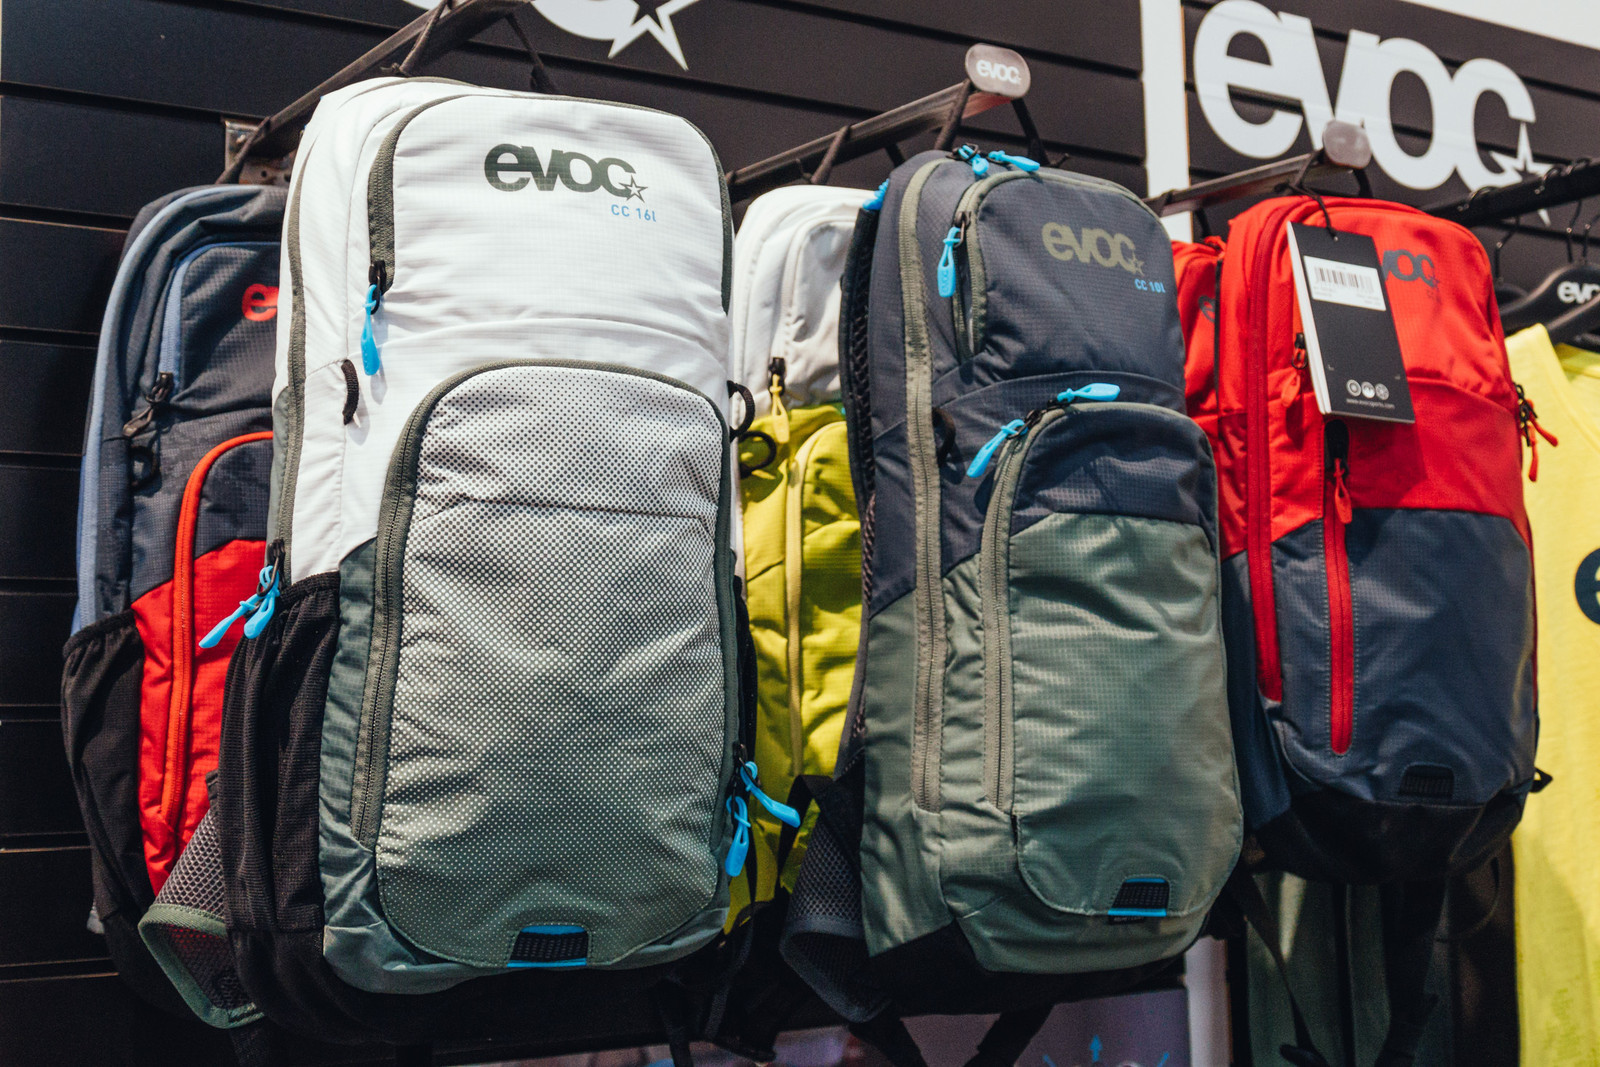 Evoc CC 10l Light Performance Packs - INTERBIKE - 2017 Women's Mountain Bike Gear - Mountain Biking Pictures - Vital MTB